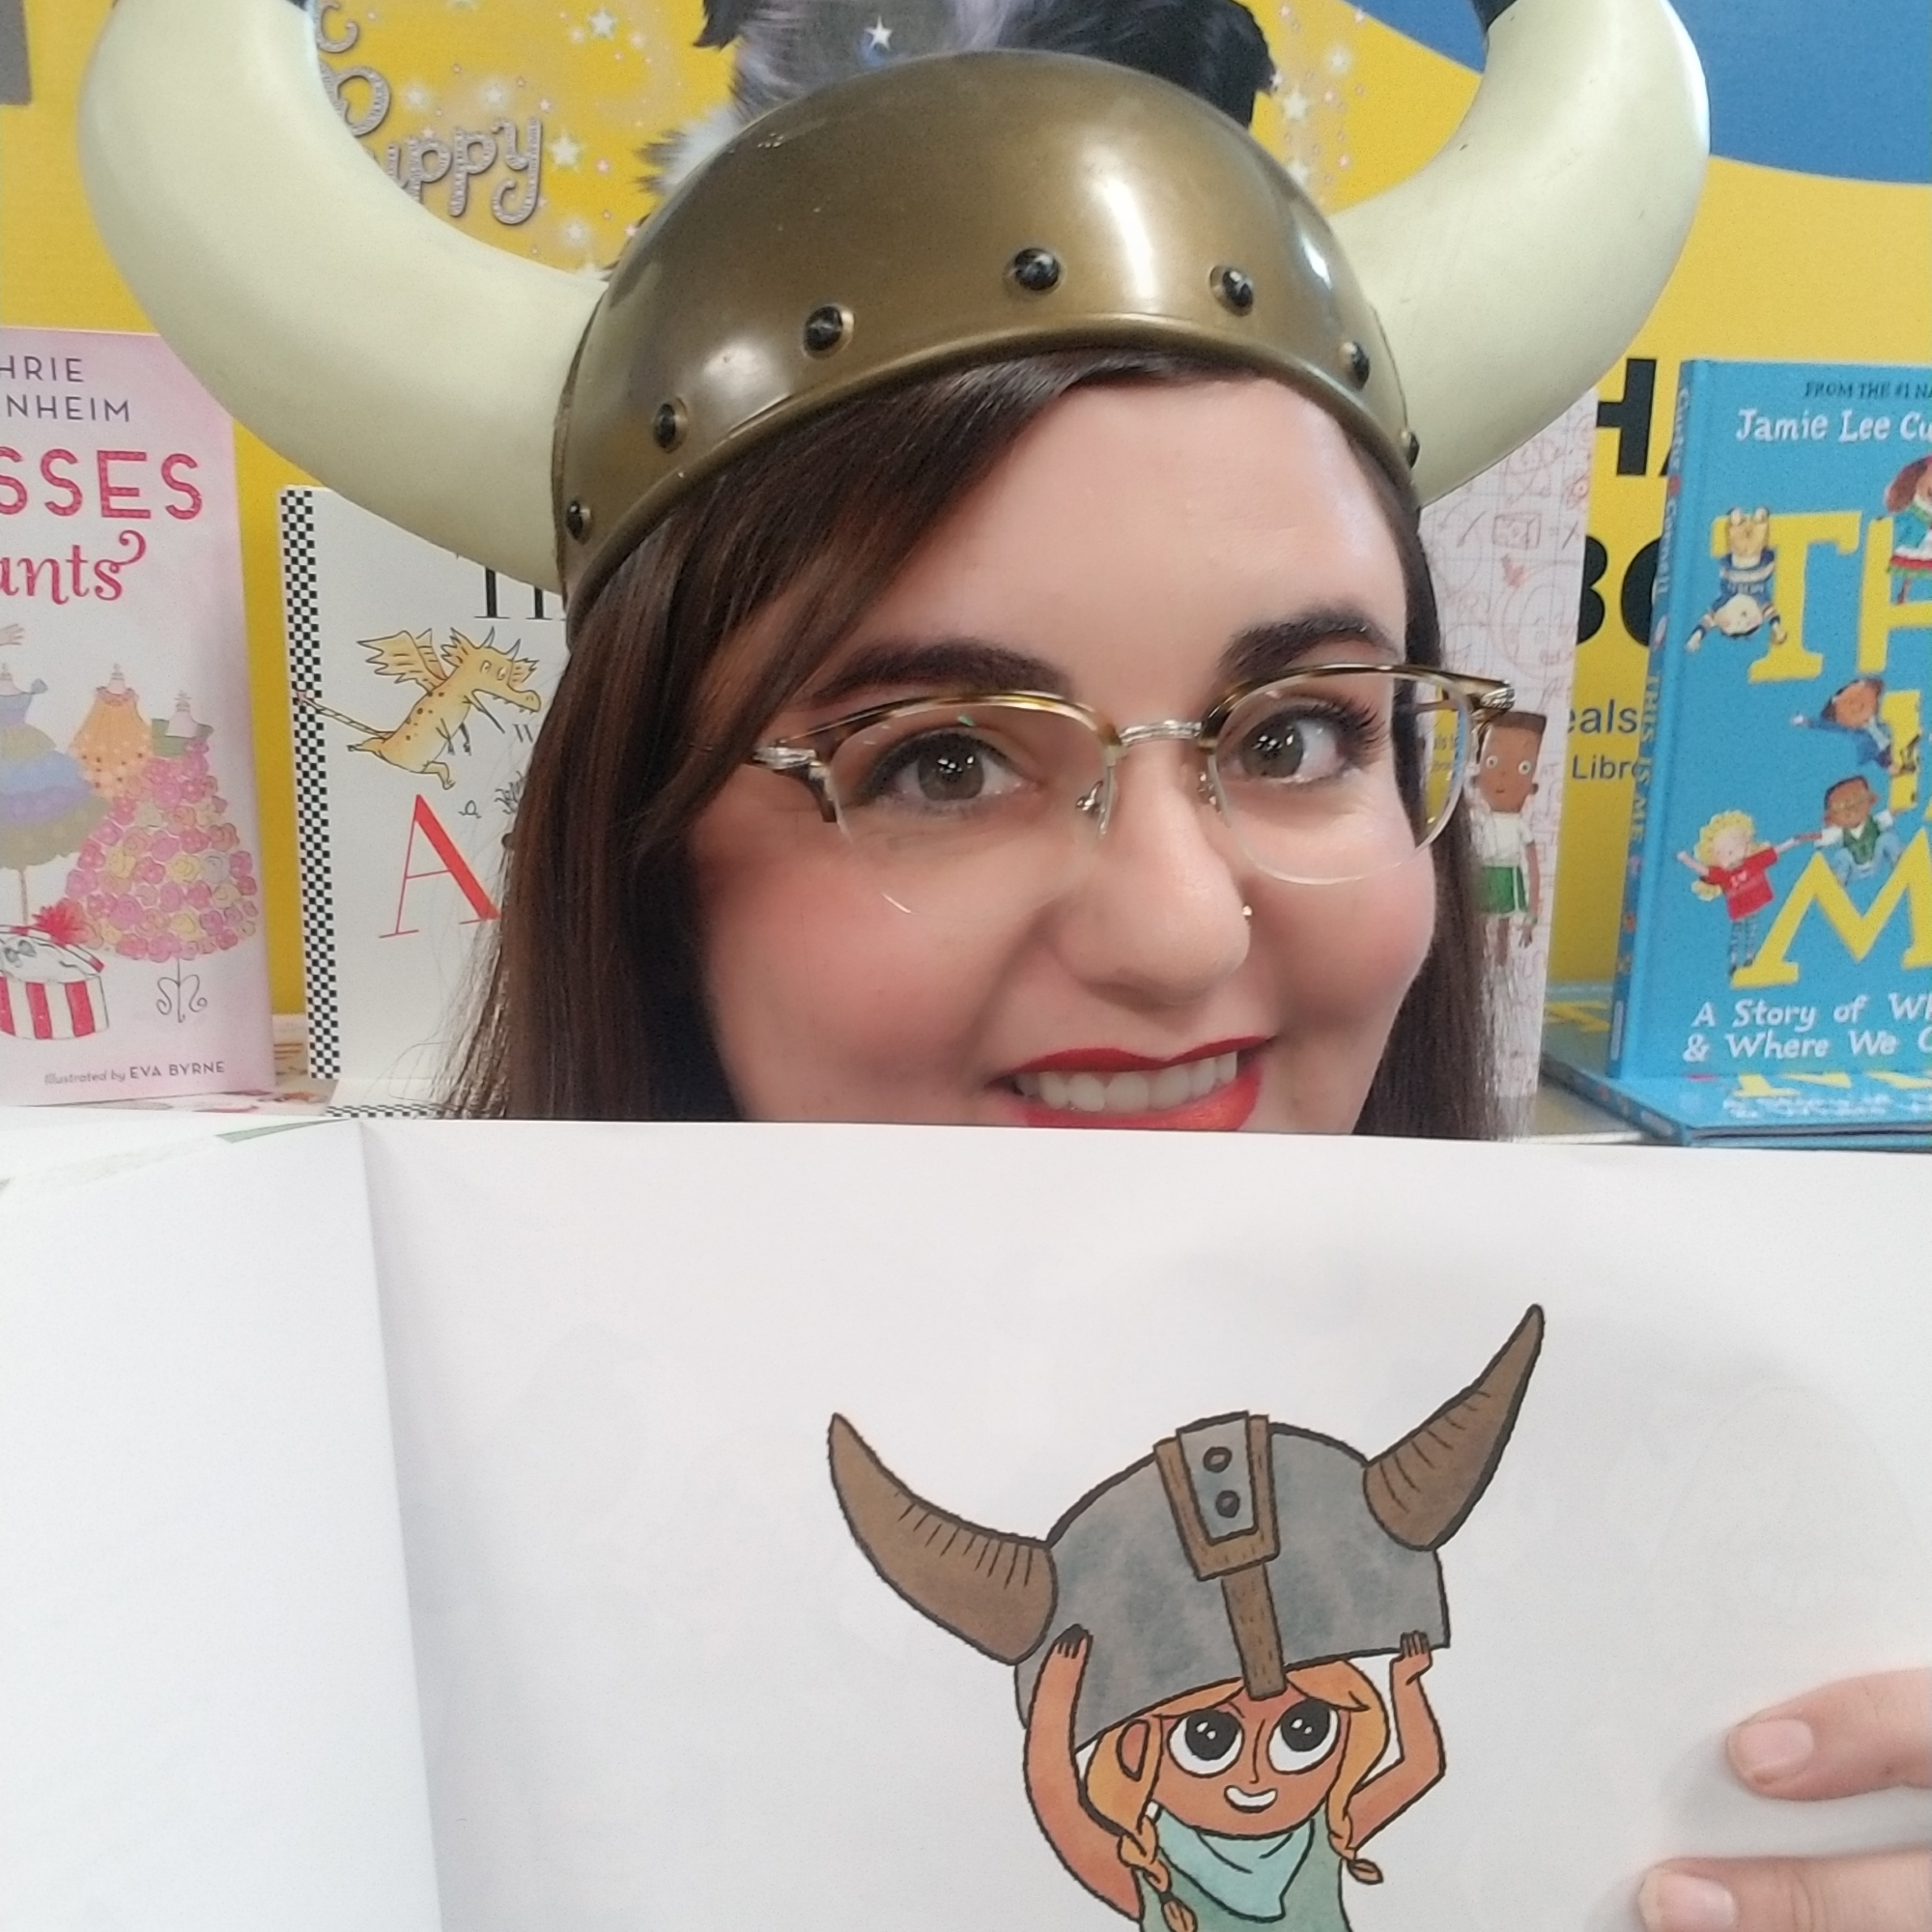 Woman with dark hair, glasses, and a Viking helmet with horns holds open a children's book featuring a character wearing the same kind of hat.